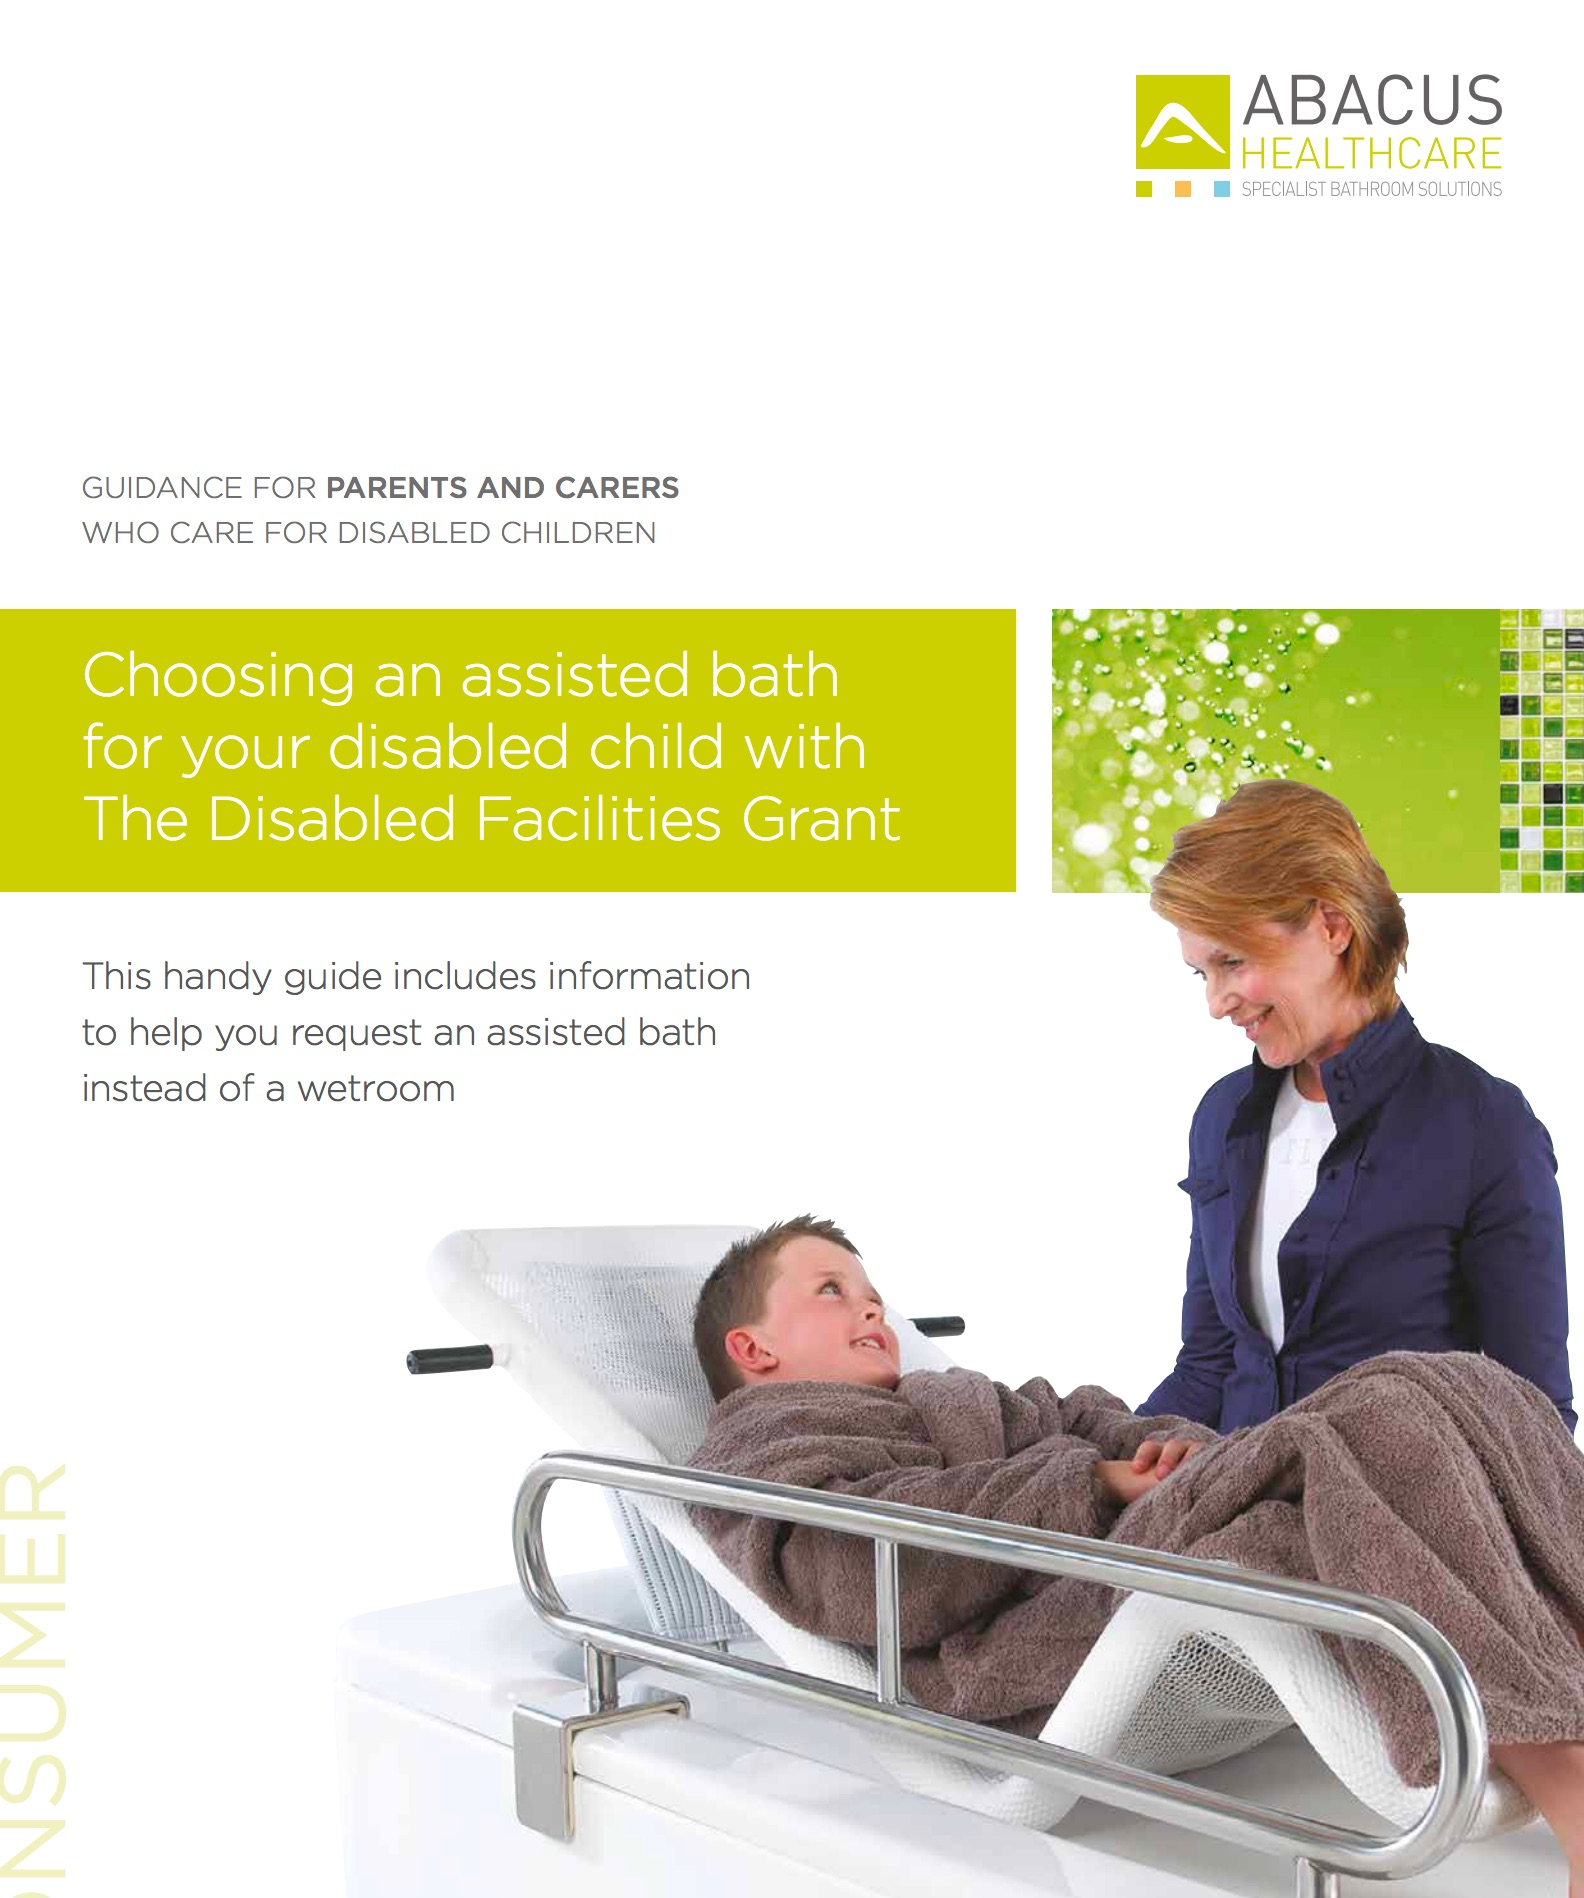 Helpful advice and tips to help you justify an accessible bath for your disabled child, relative or client